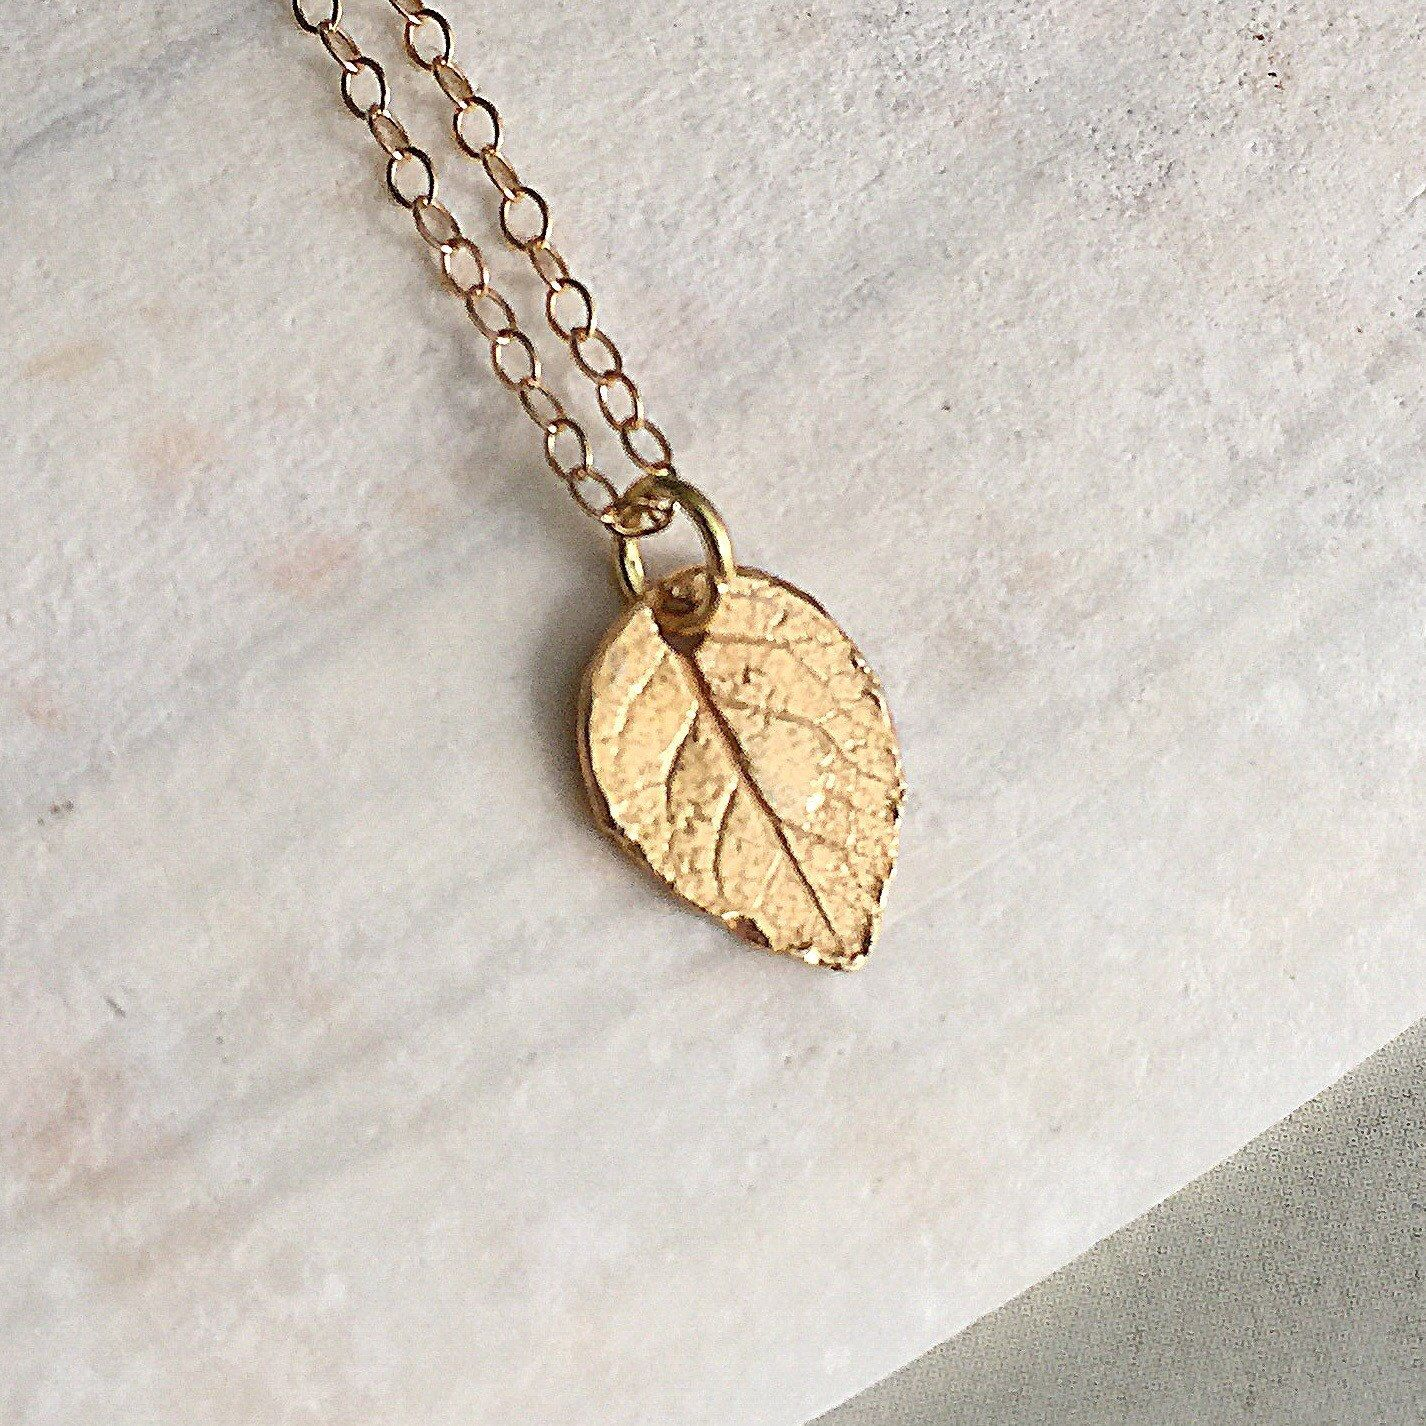 for wholesale leaves product jewelry pendant necklace gift long letter fashion gold chain styles european leaf number women